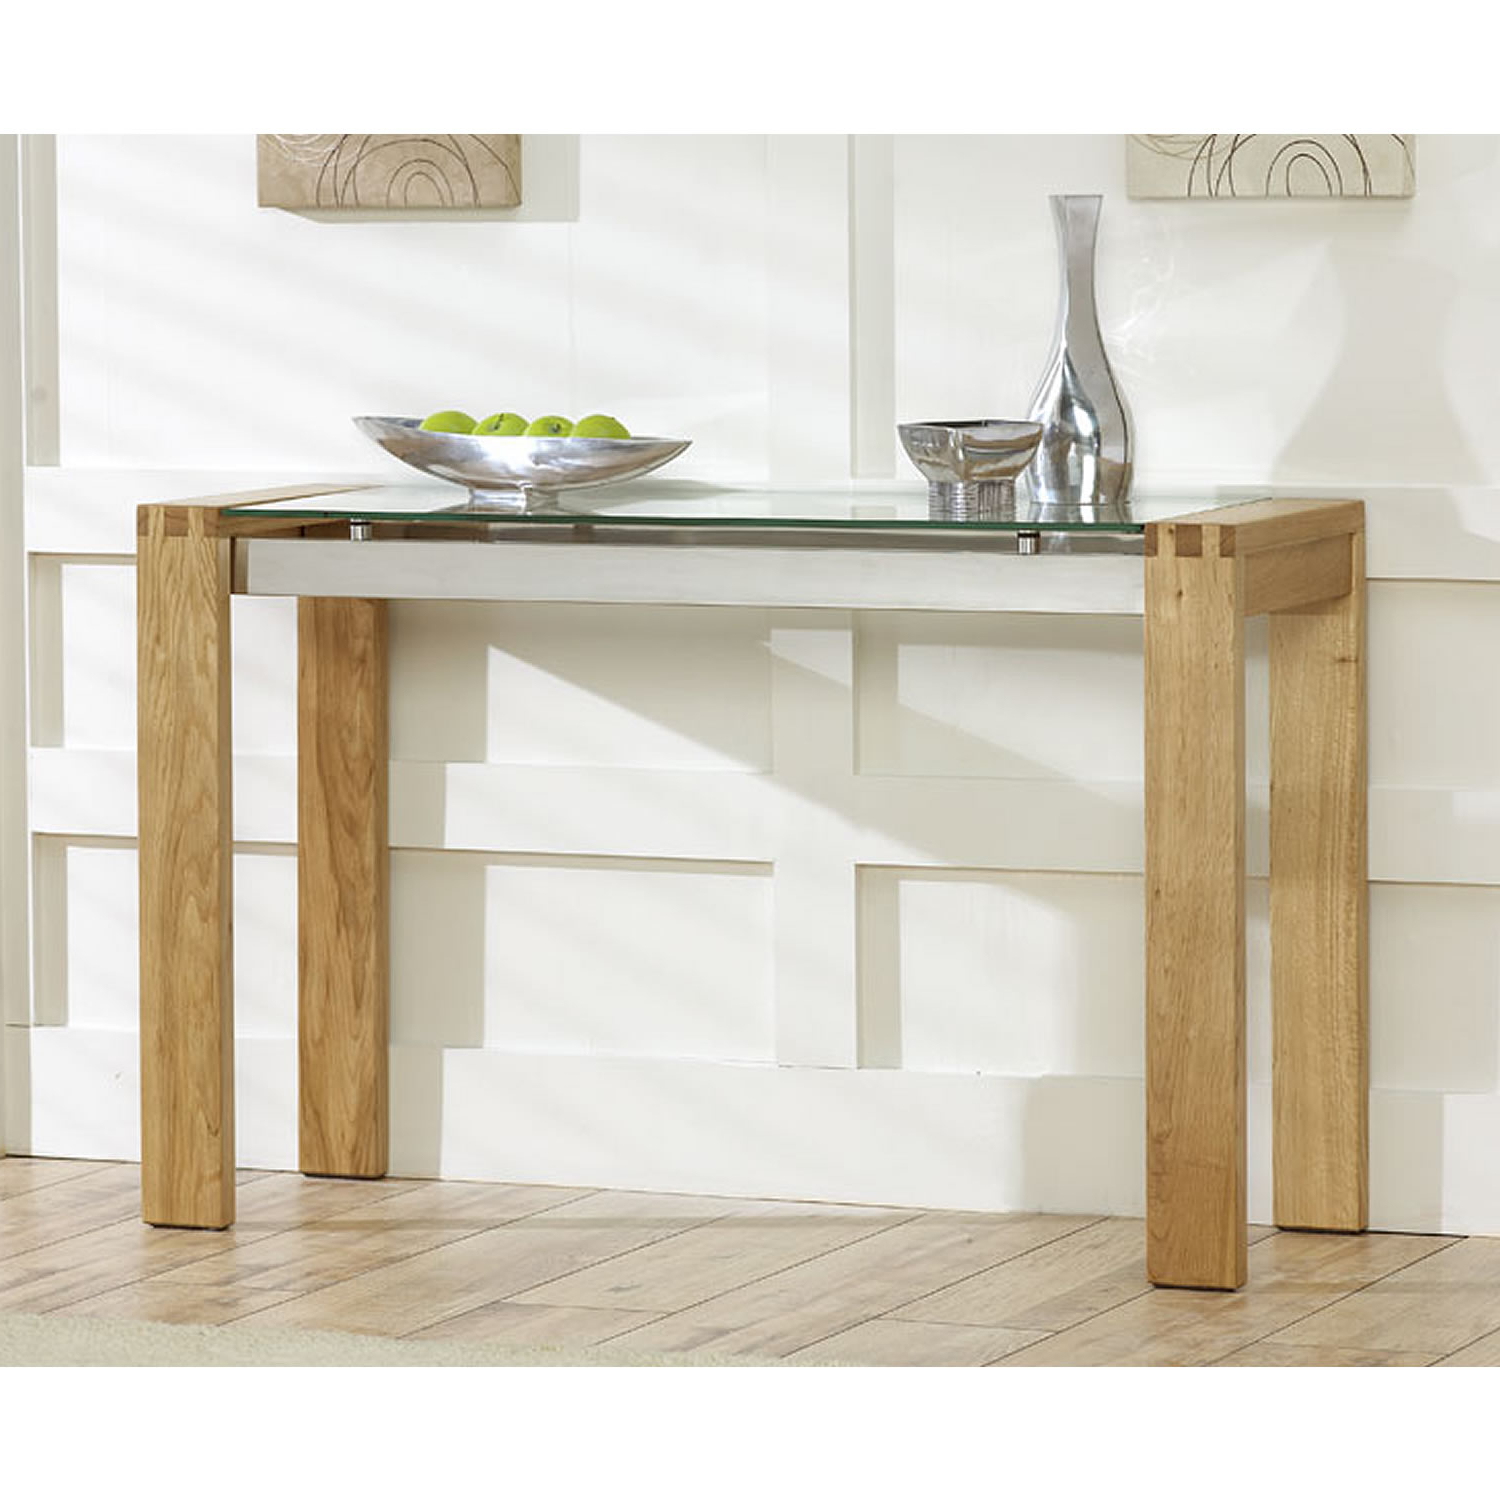 Venice Solid Oak Console Table With Glass Top Next Day Elegant Intended For Era Glass Console Tables (View 5 of 20)